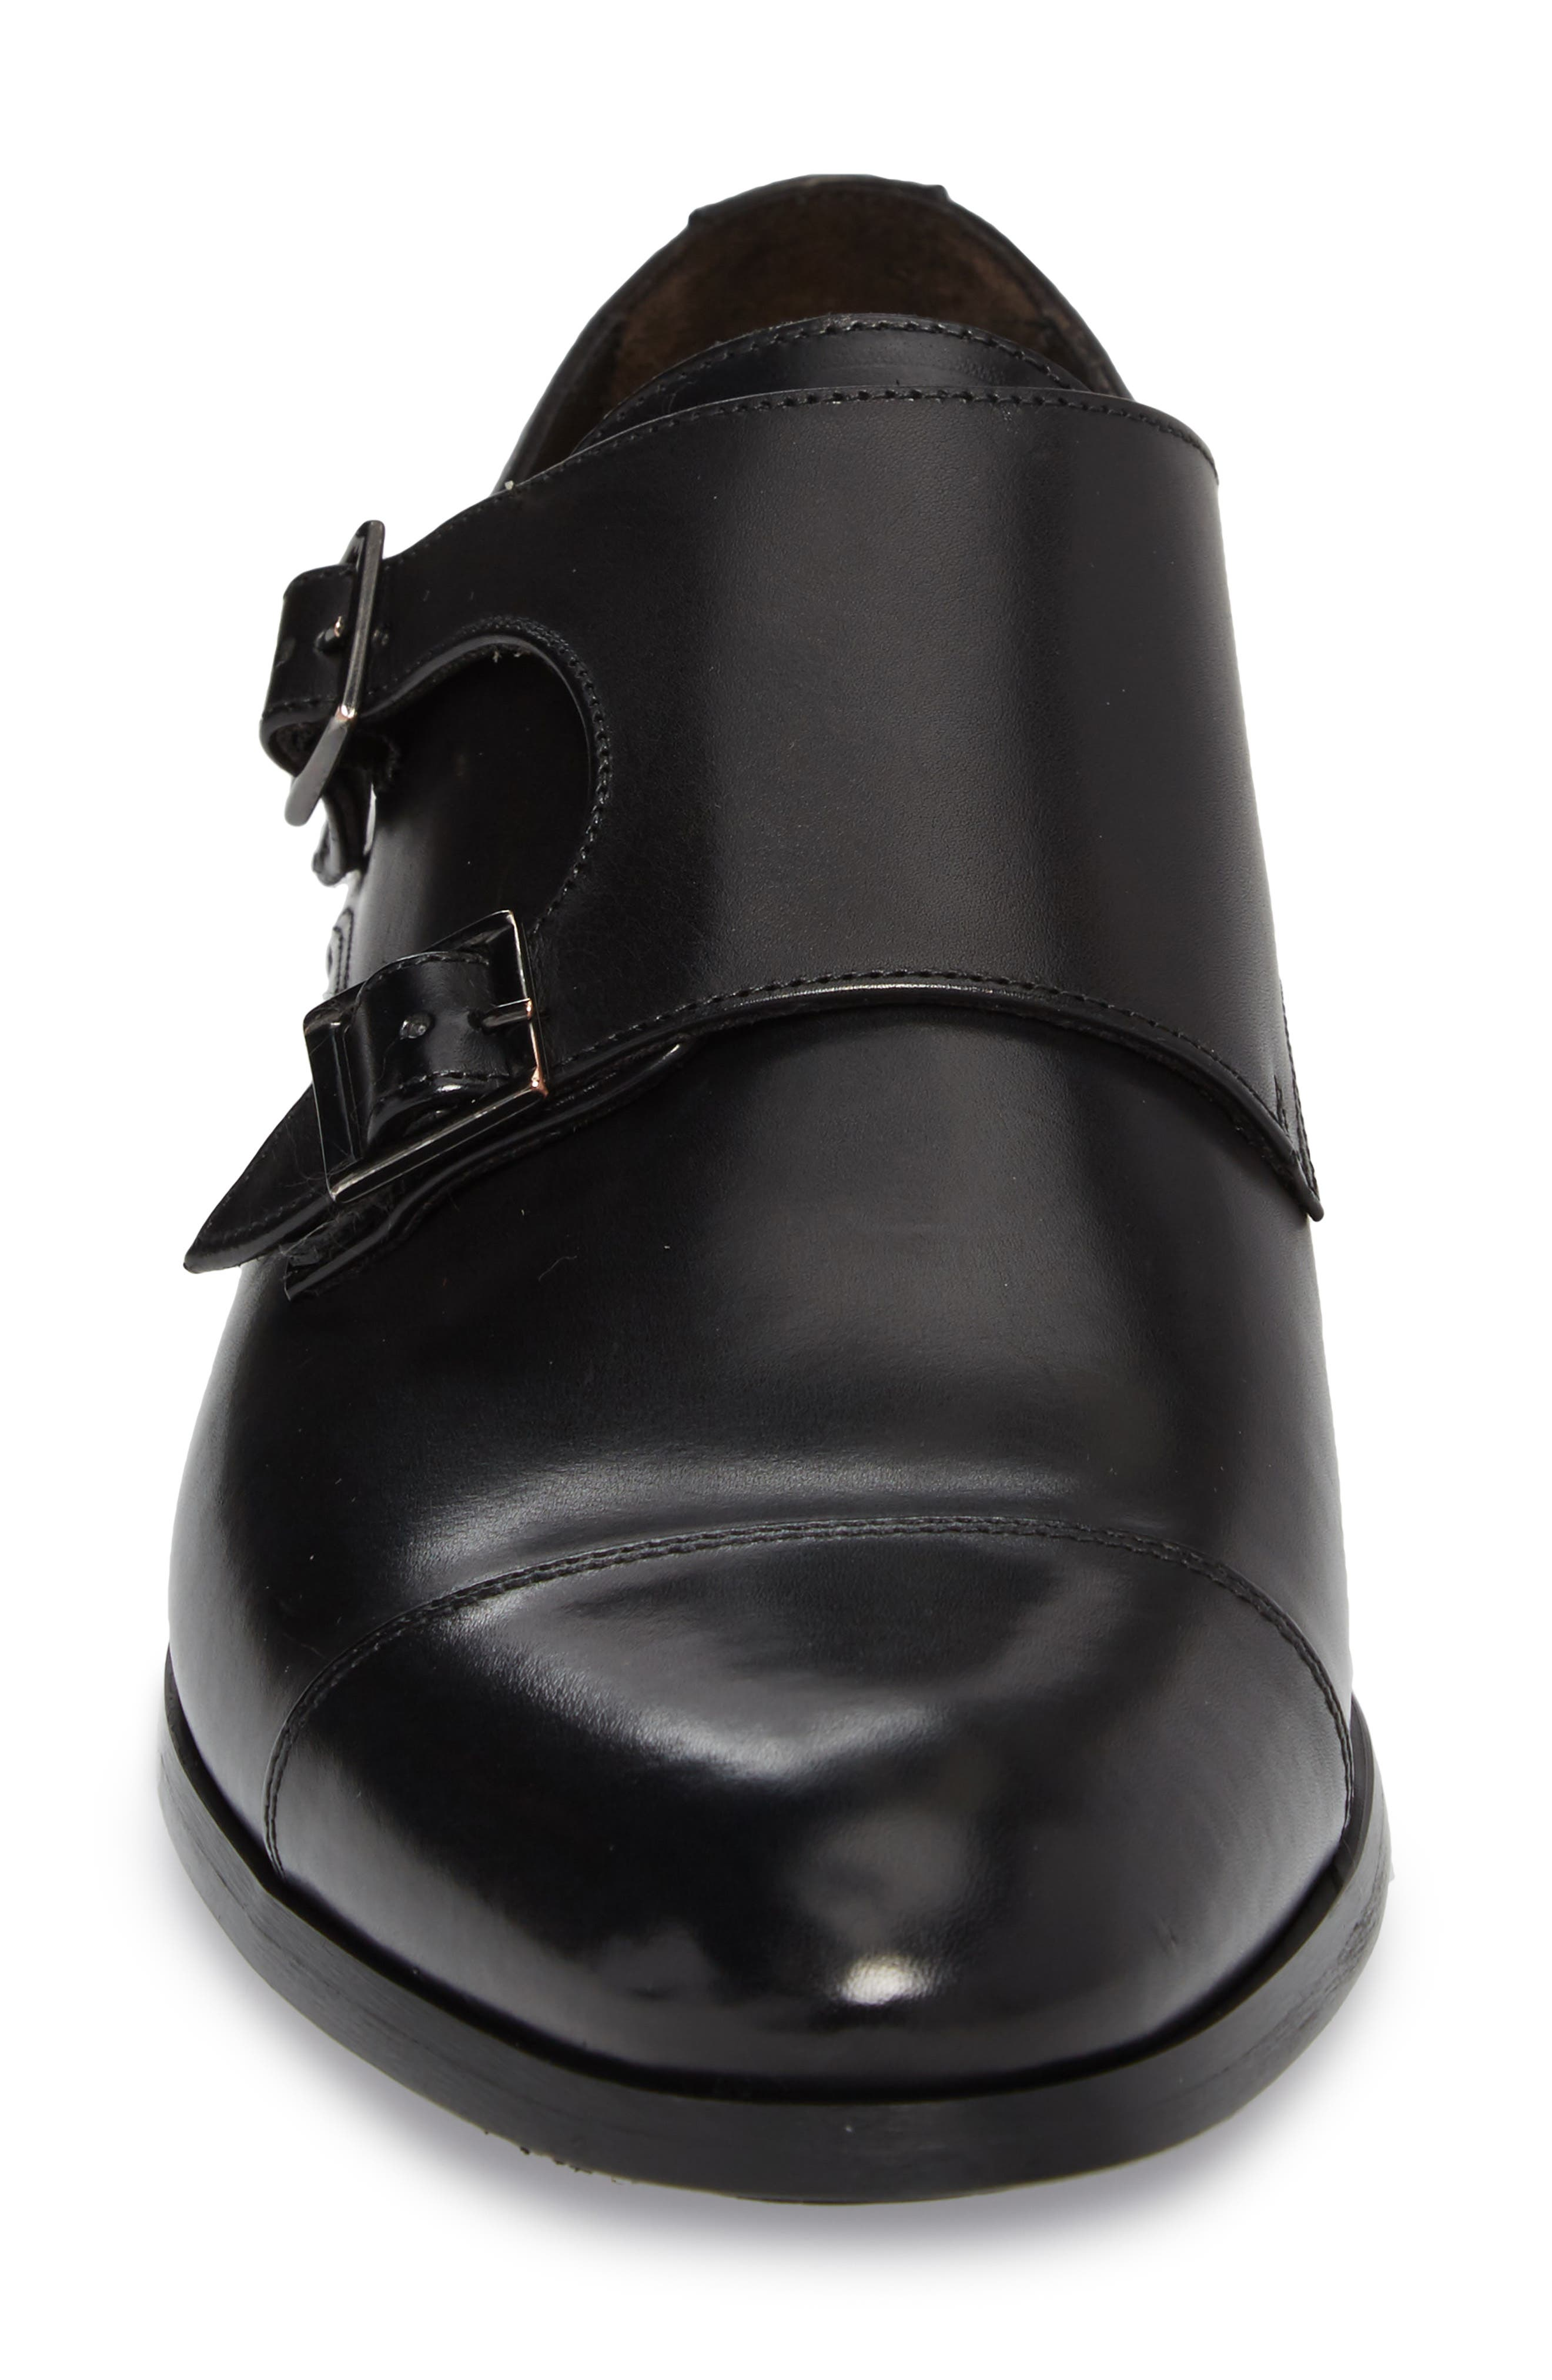 TO BOOT NEW YORK, Bankston Cap Toe Double Strap Monk Shoe, Alternate thumbnail 4, color, BLACK LEATHER